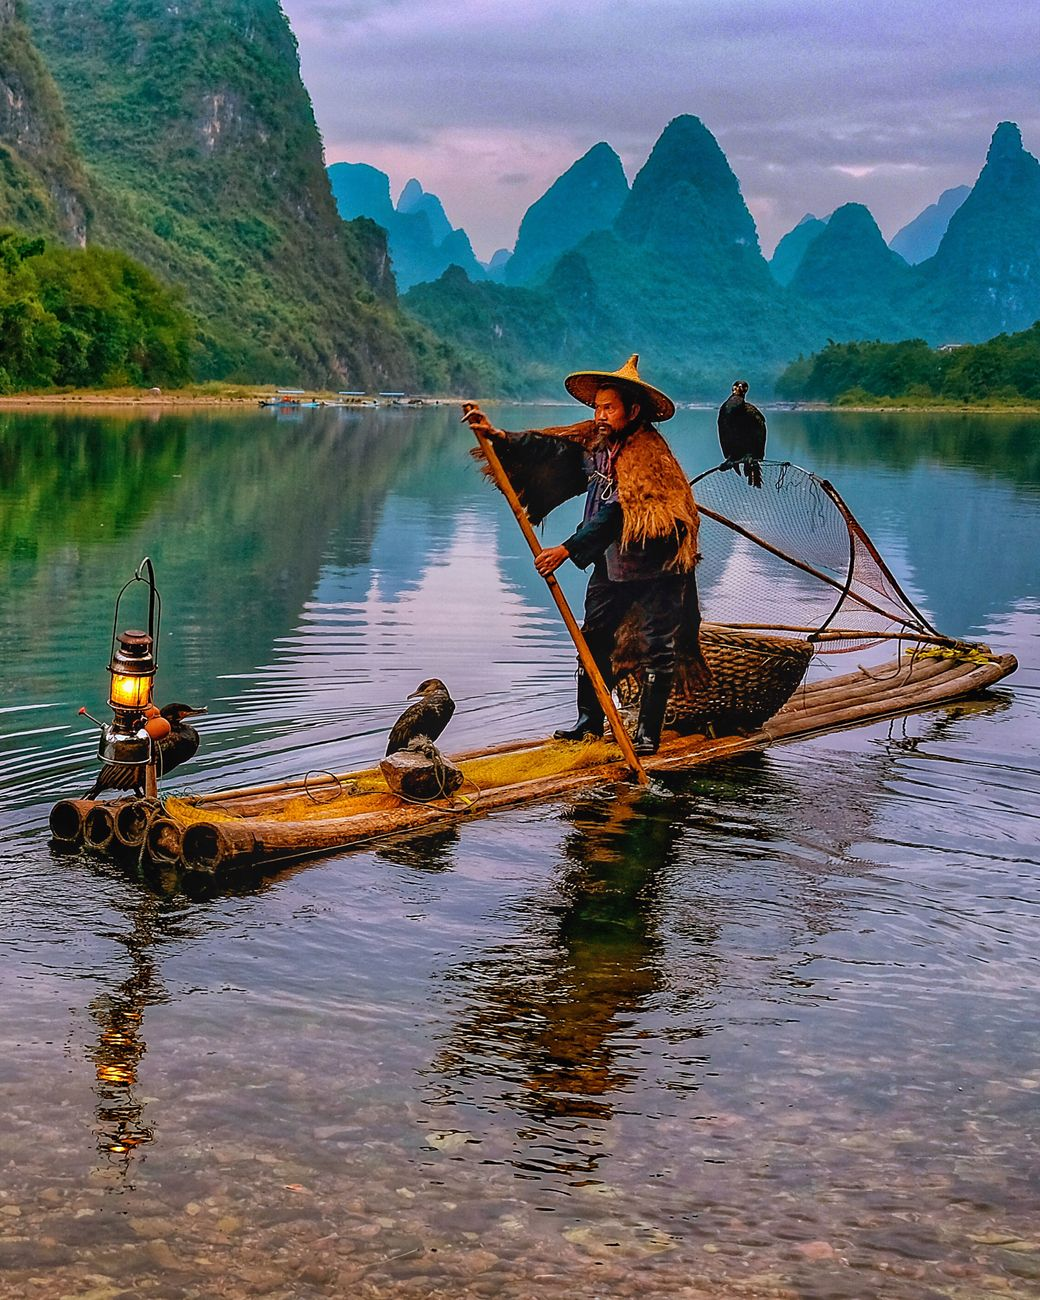 Cormorant fisher at the Li river